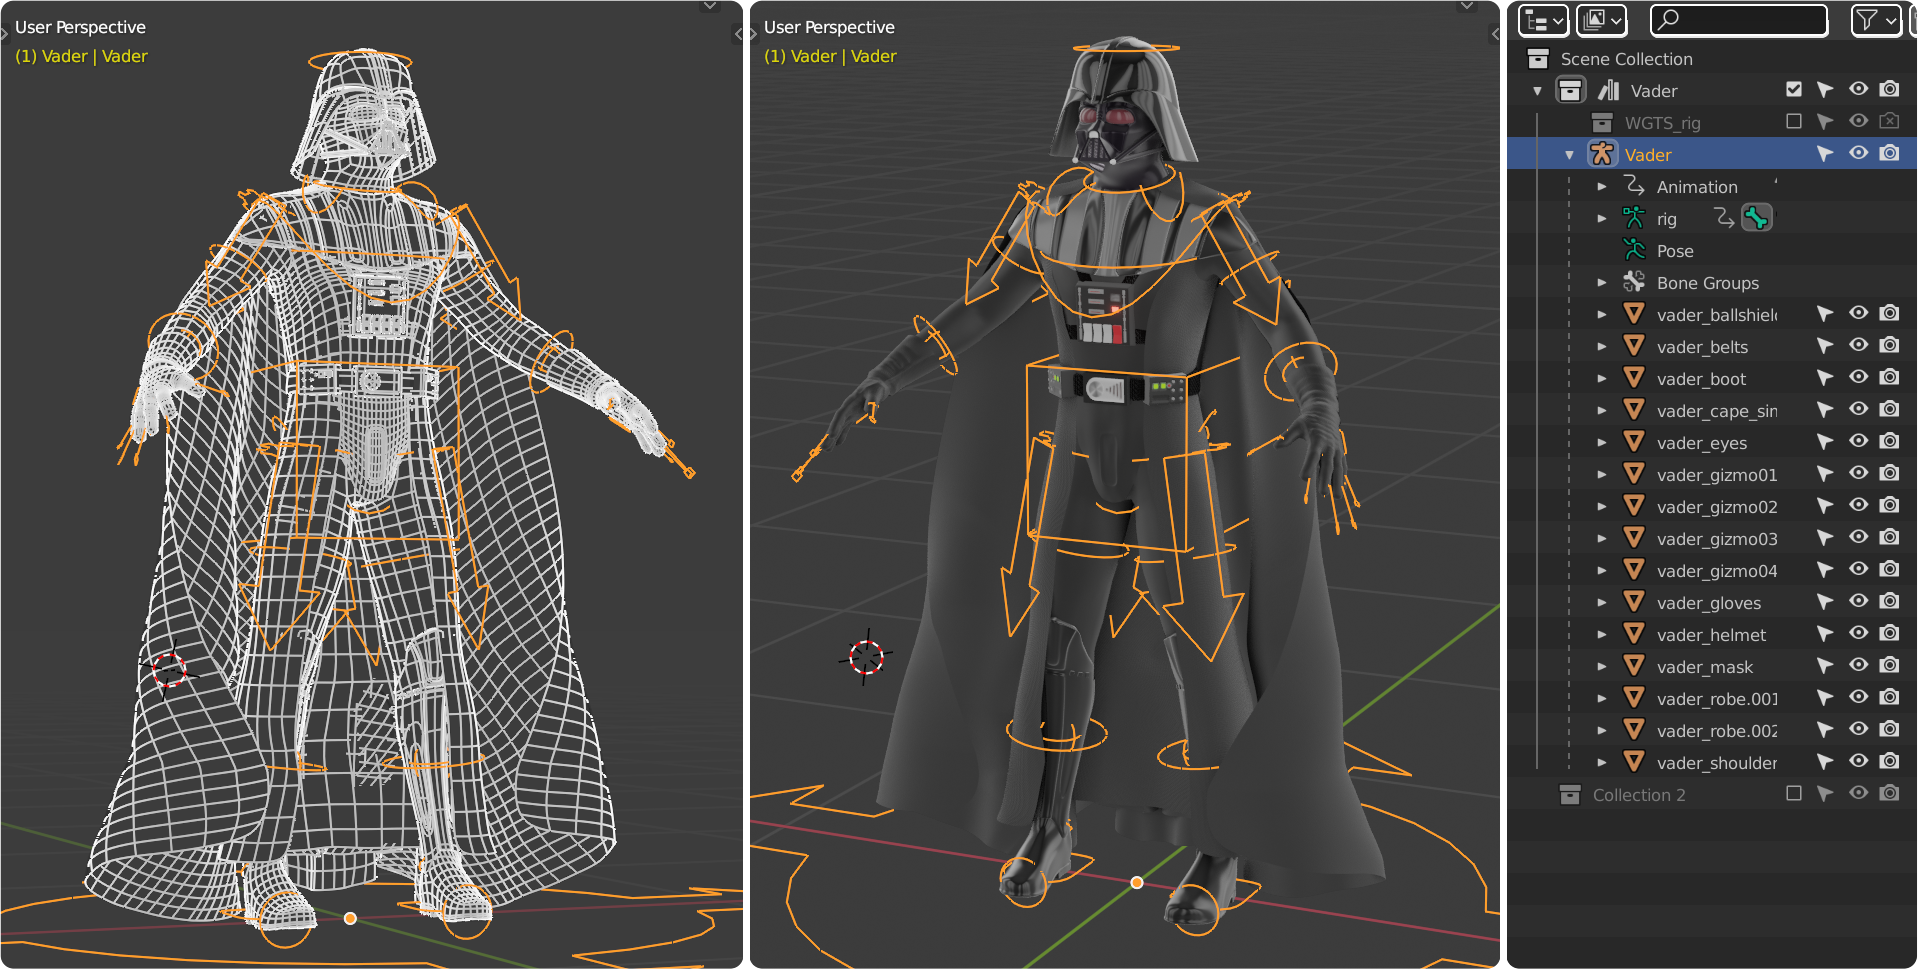 Vader preview image 1